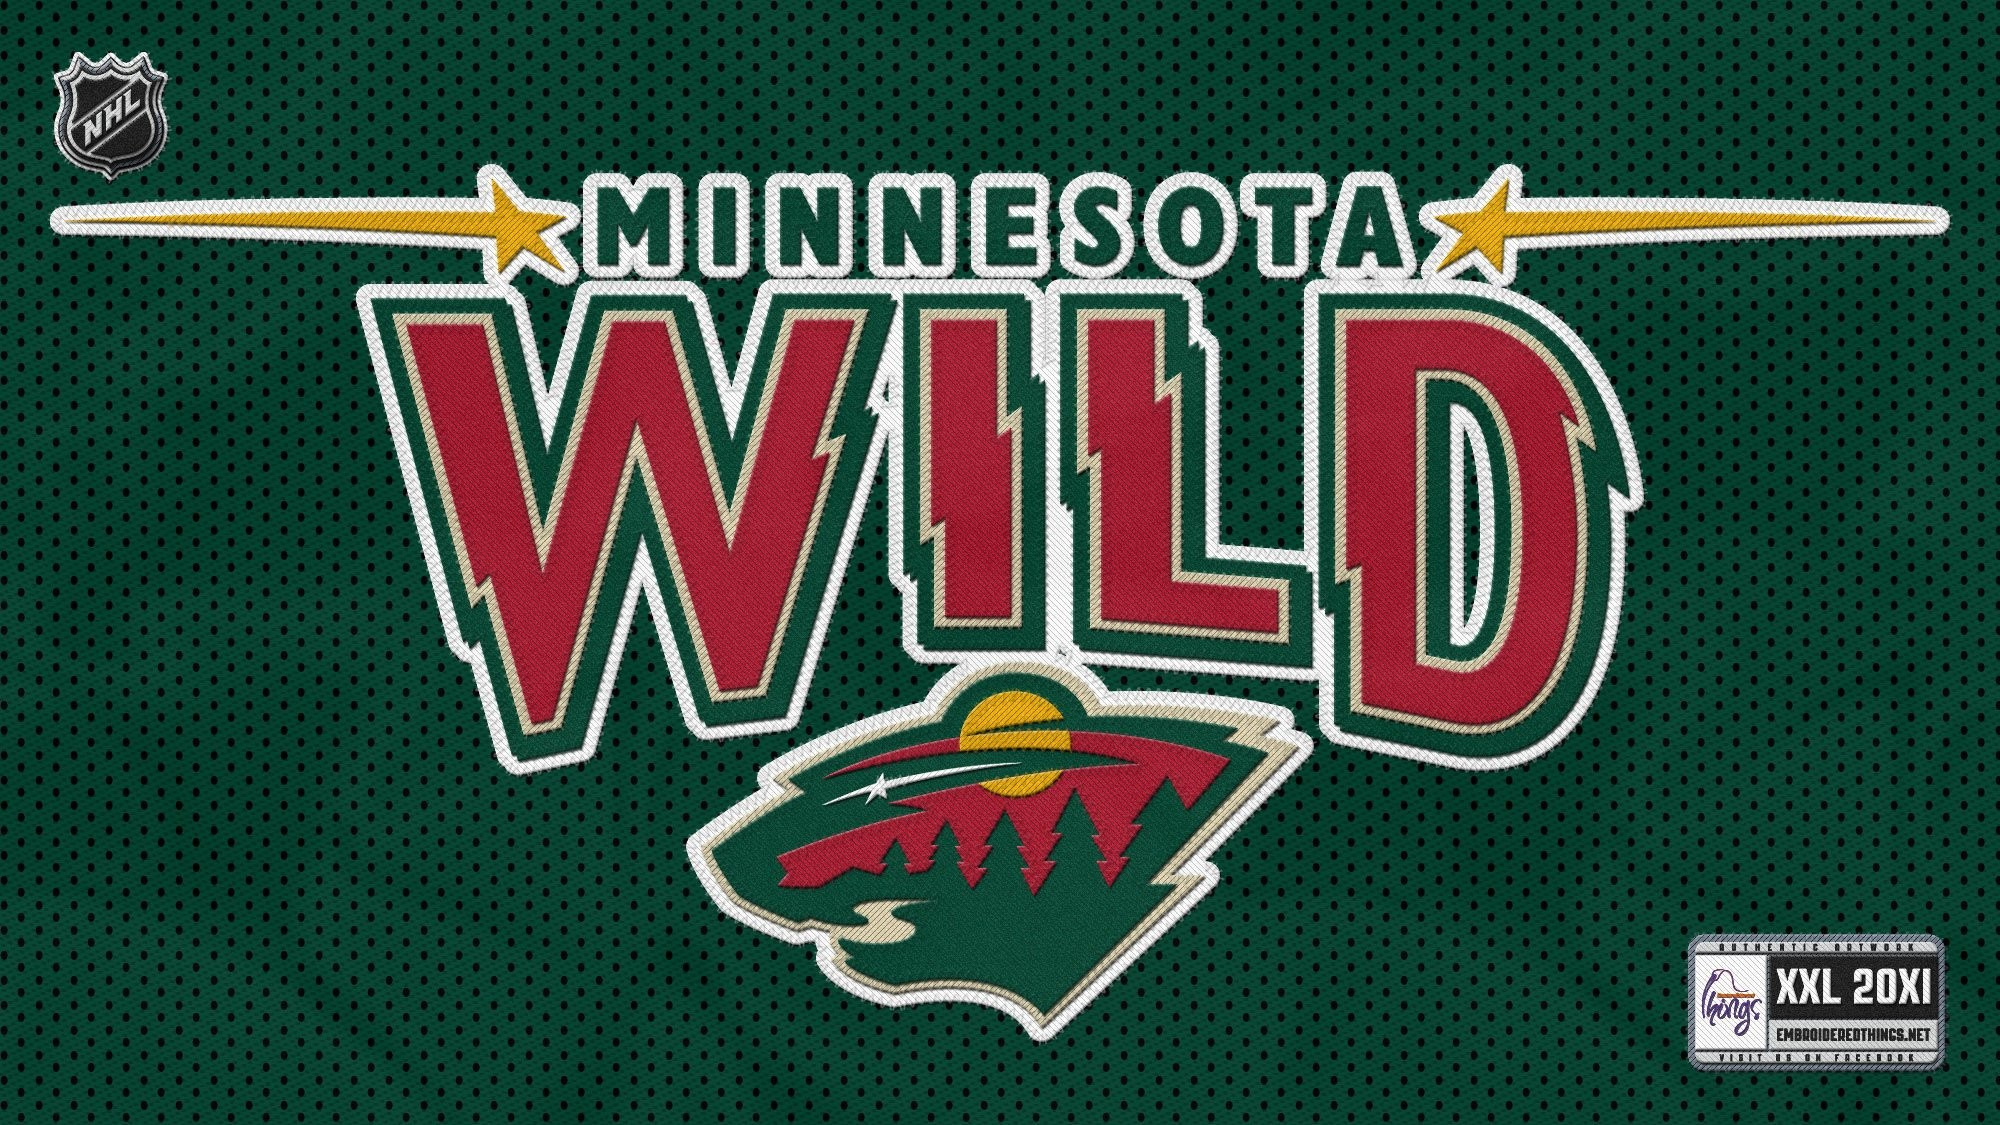 2000x1125 MINNESOTA WILD hockey nhl (16) wallpaper background